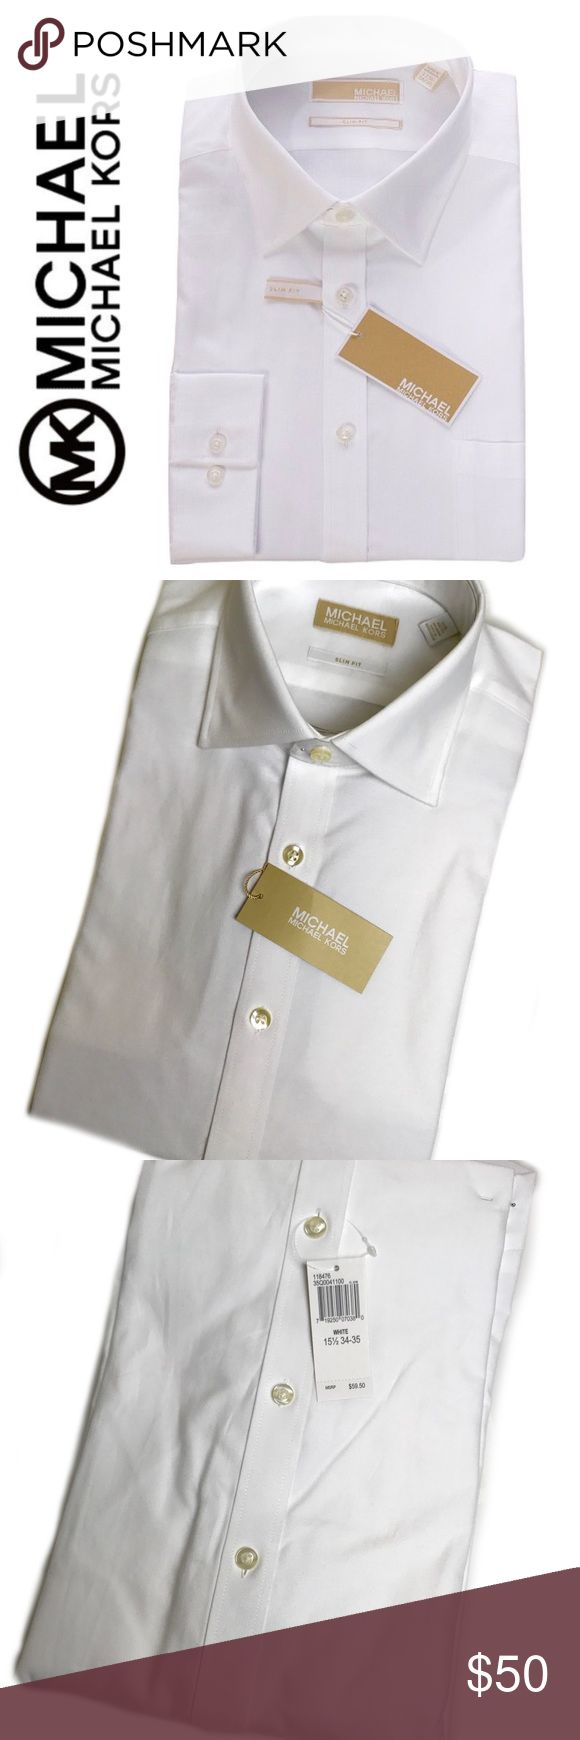 Michael Kors Signature Slim Fit Dress Shirt Michael Kors Signature Slim Fit Dress Shirt in Brilliant White, Size Large 15 1/2, 34/35 Tag, Dress to Impress with this Classic Long Sleeve Dress Shirt, a Must for Every Sophisticated Man's Closet! Michael Kors Shirts Dress Shirts